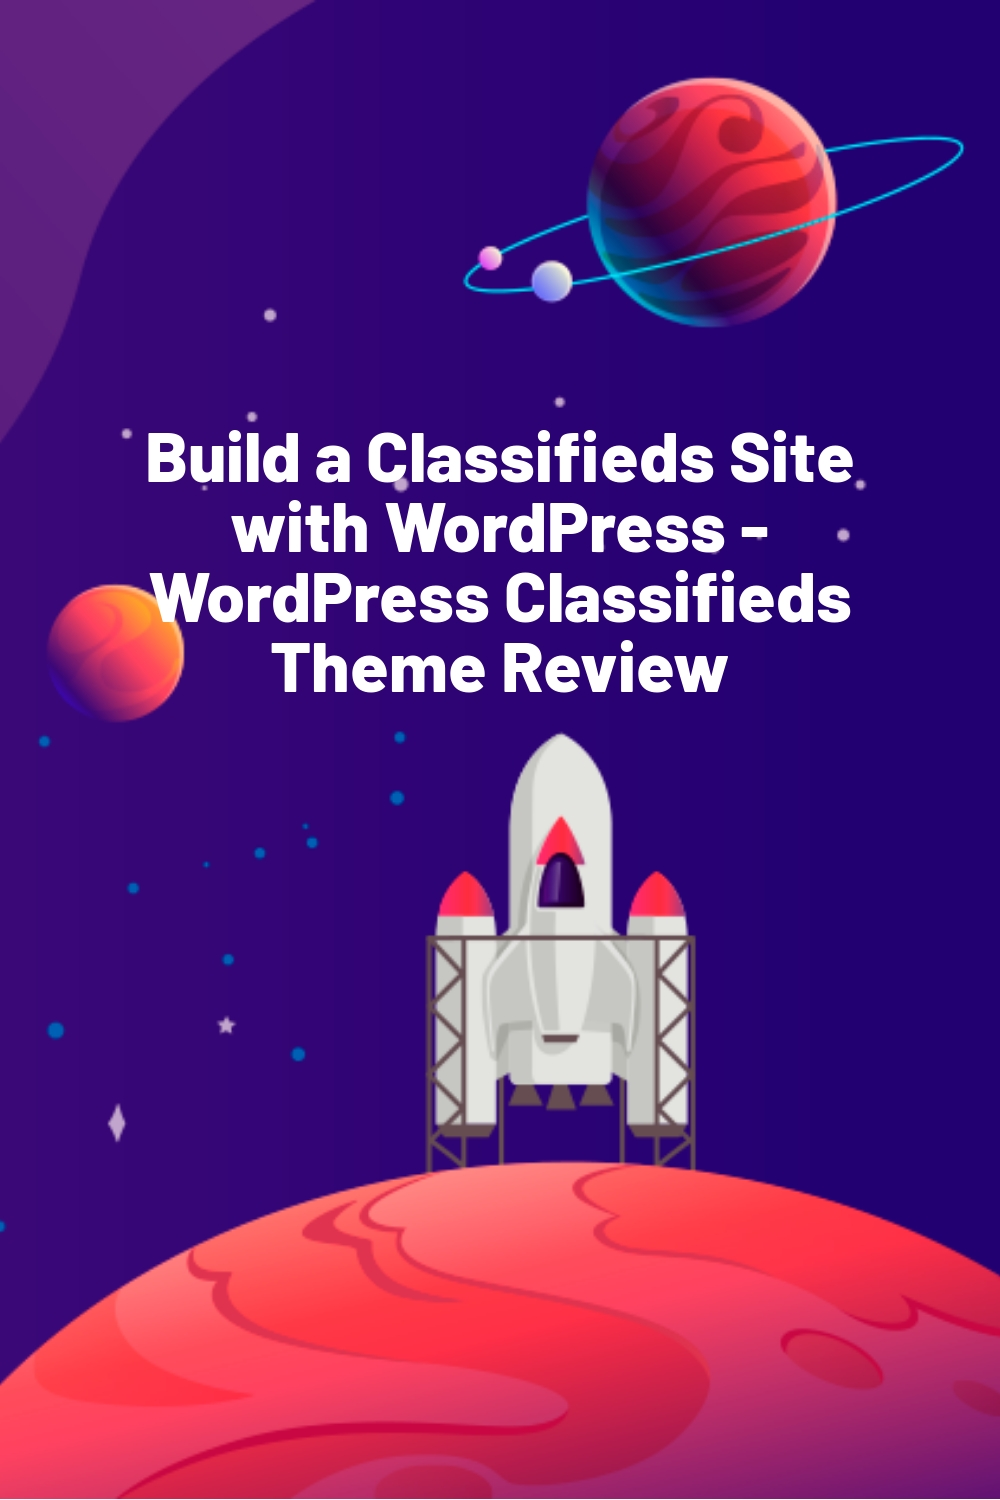 Build a Classifieds Site with WordPress – WordPress Classifieds Theme Review